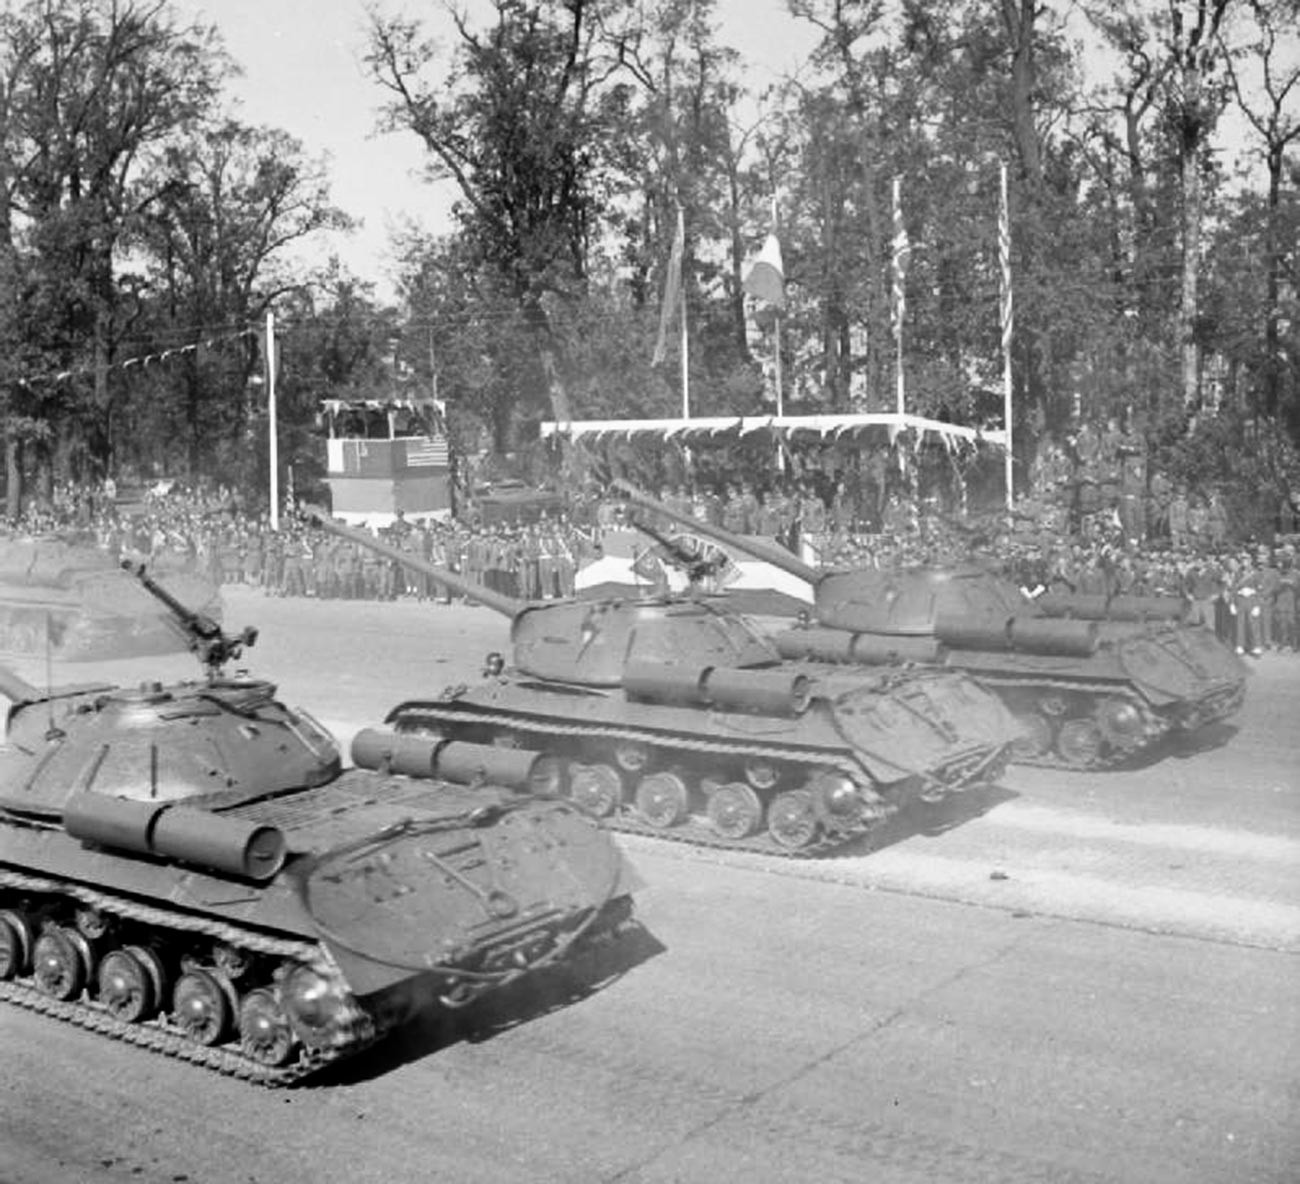 Soviet IS-3 tanks driving down the Charlottenburger Chaussee in Berlin during the parade.